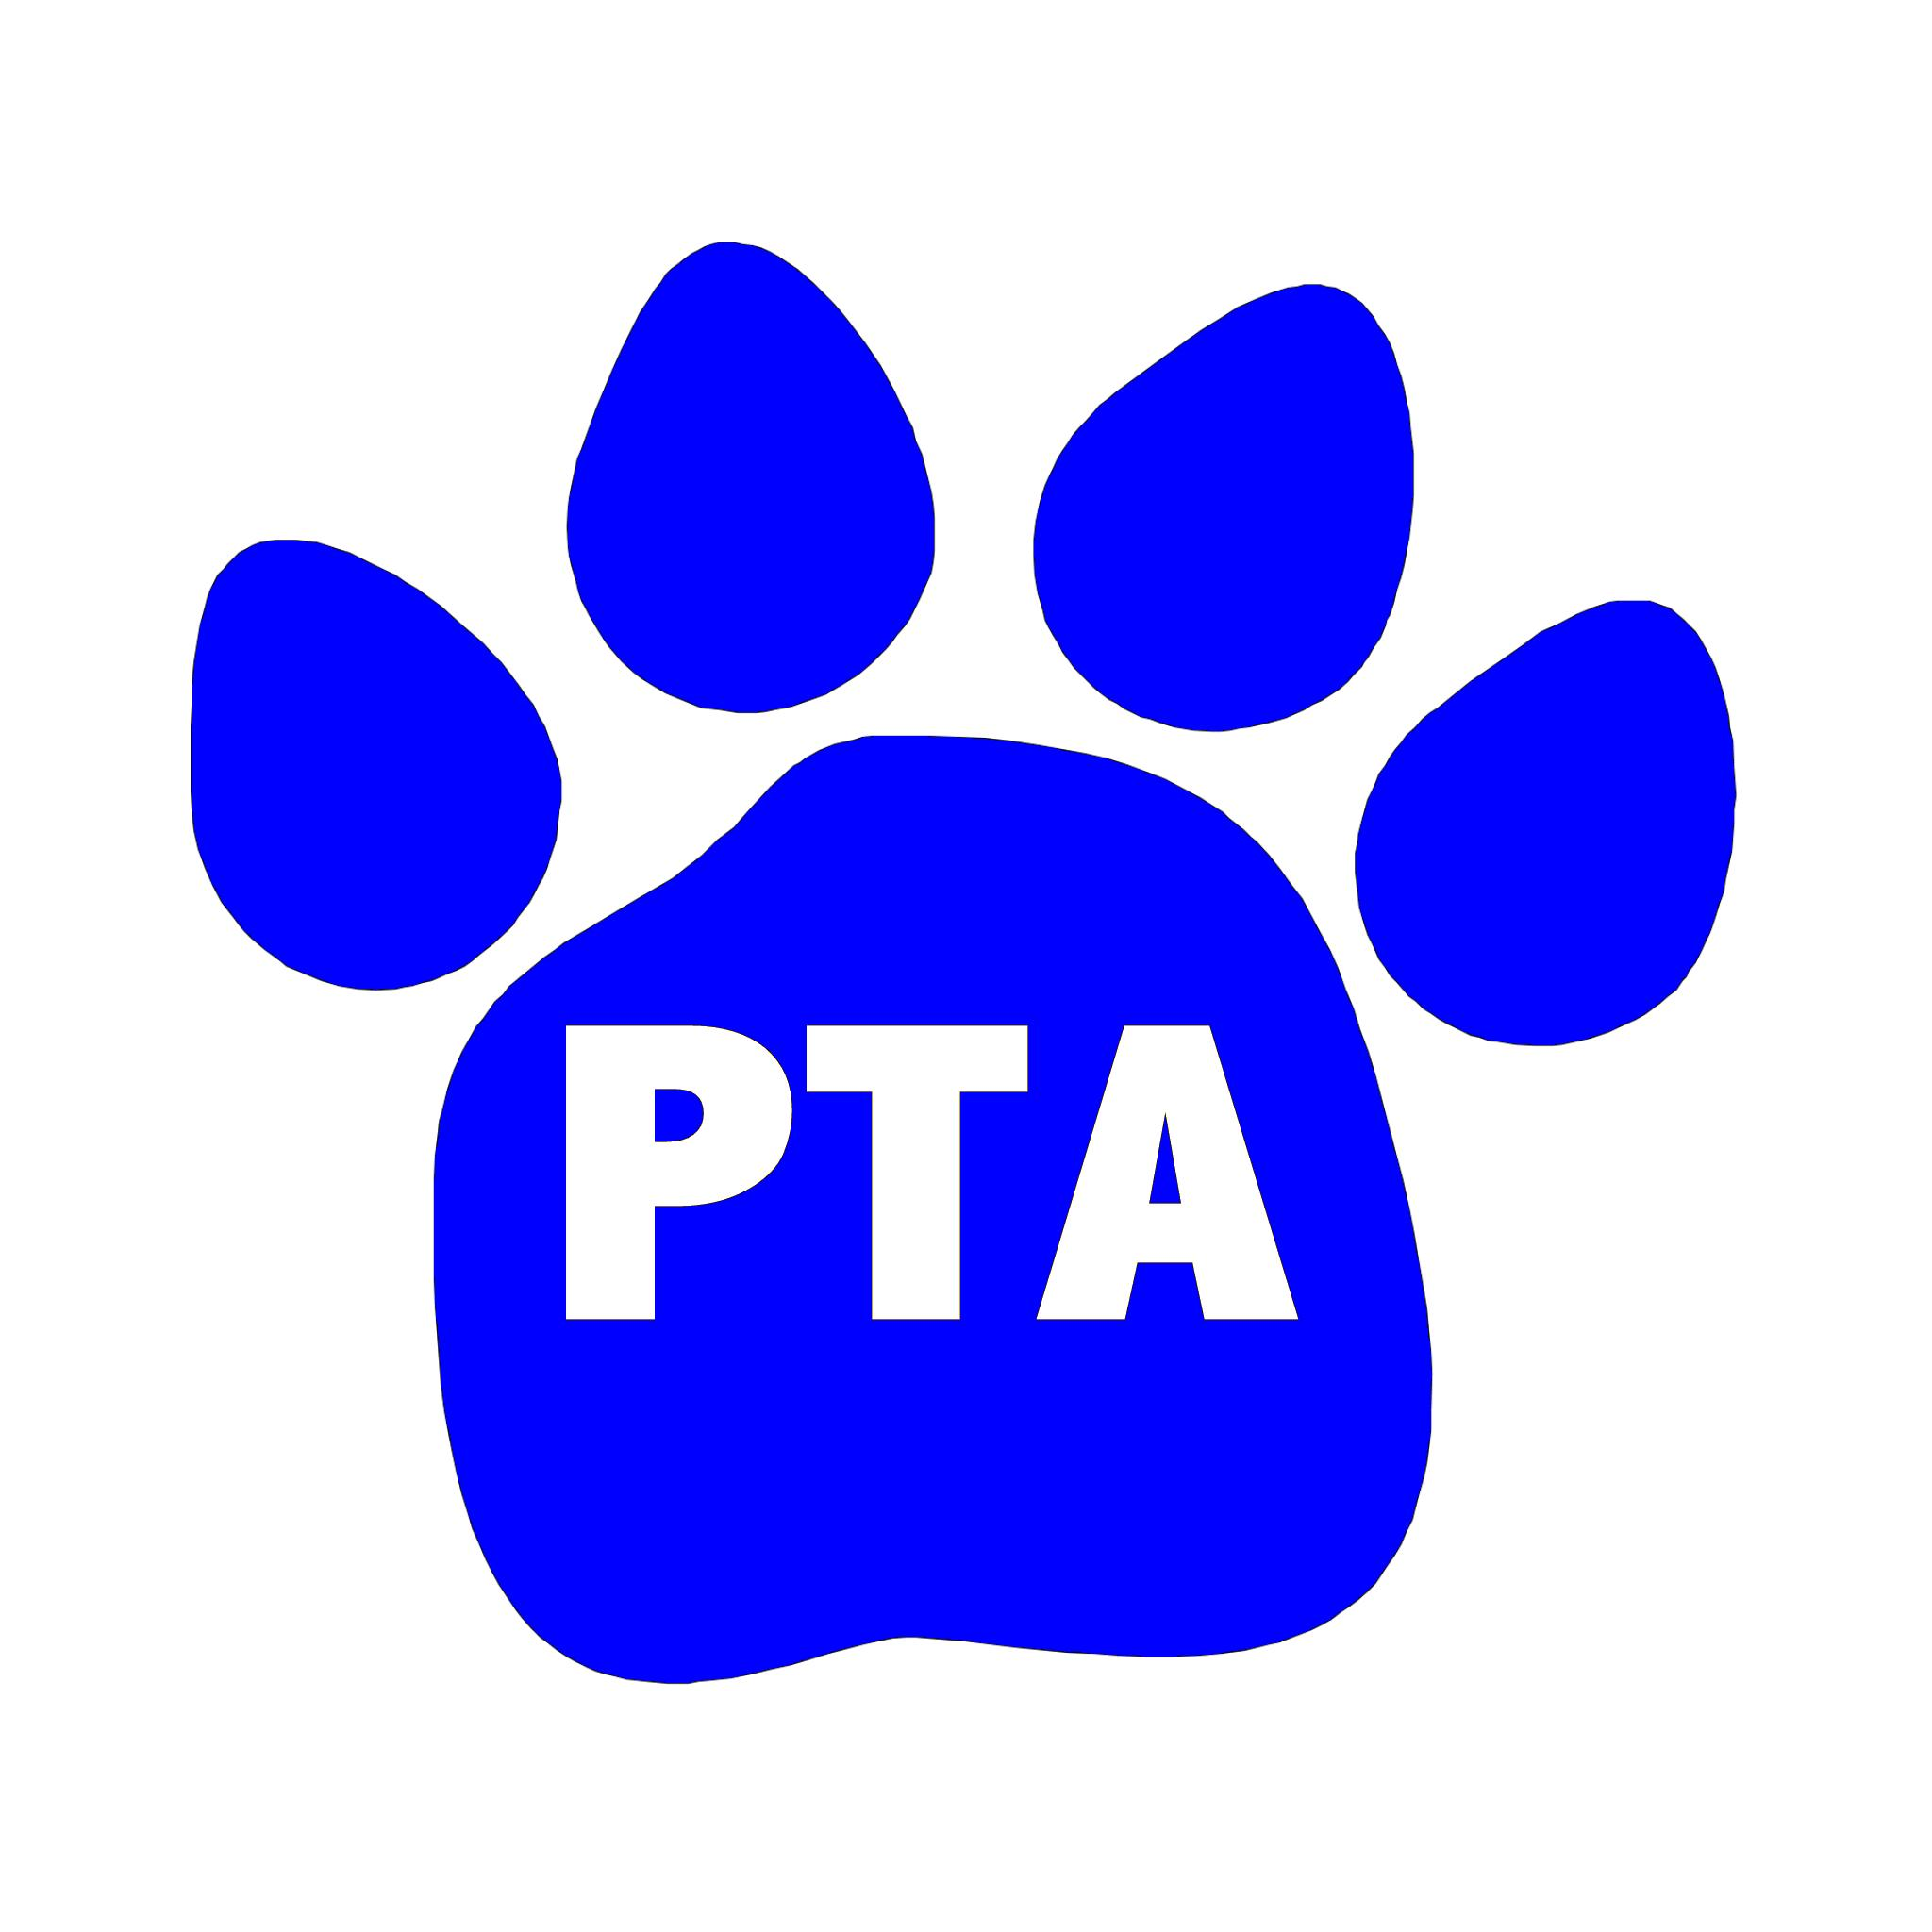 PTA Board Members for Whiteville Primary - Whiteville Primary School